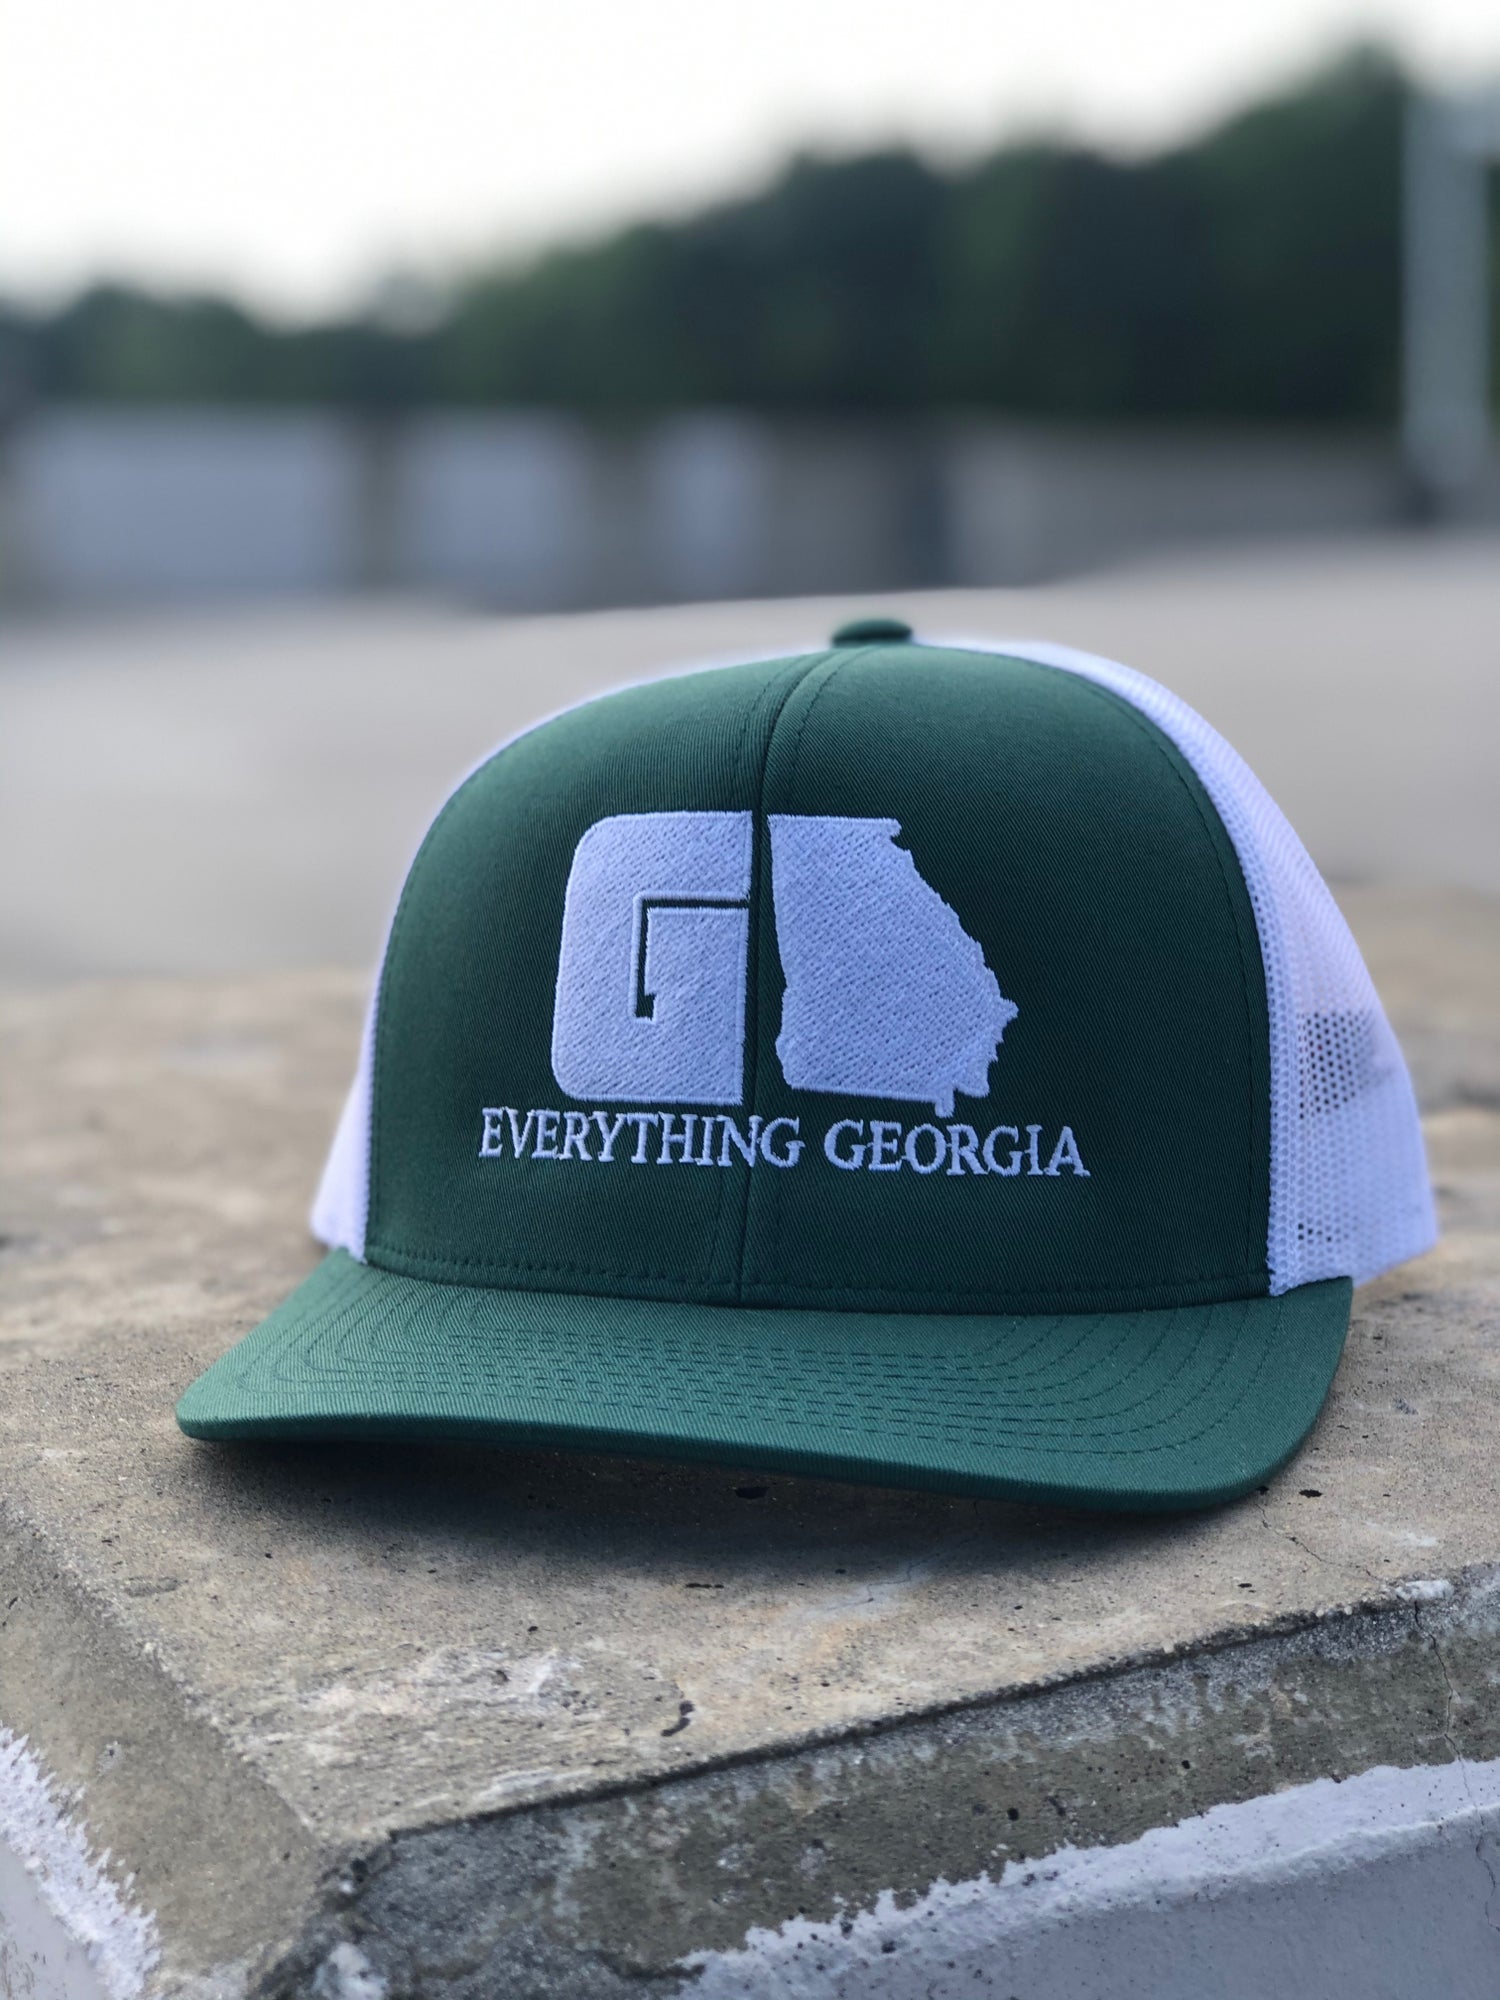 Image of GAFollowers 'Everything Georgia' Classic Trucker